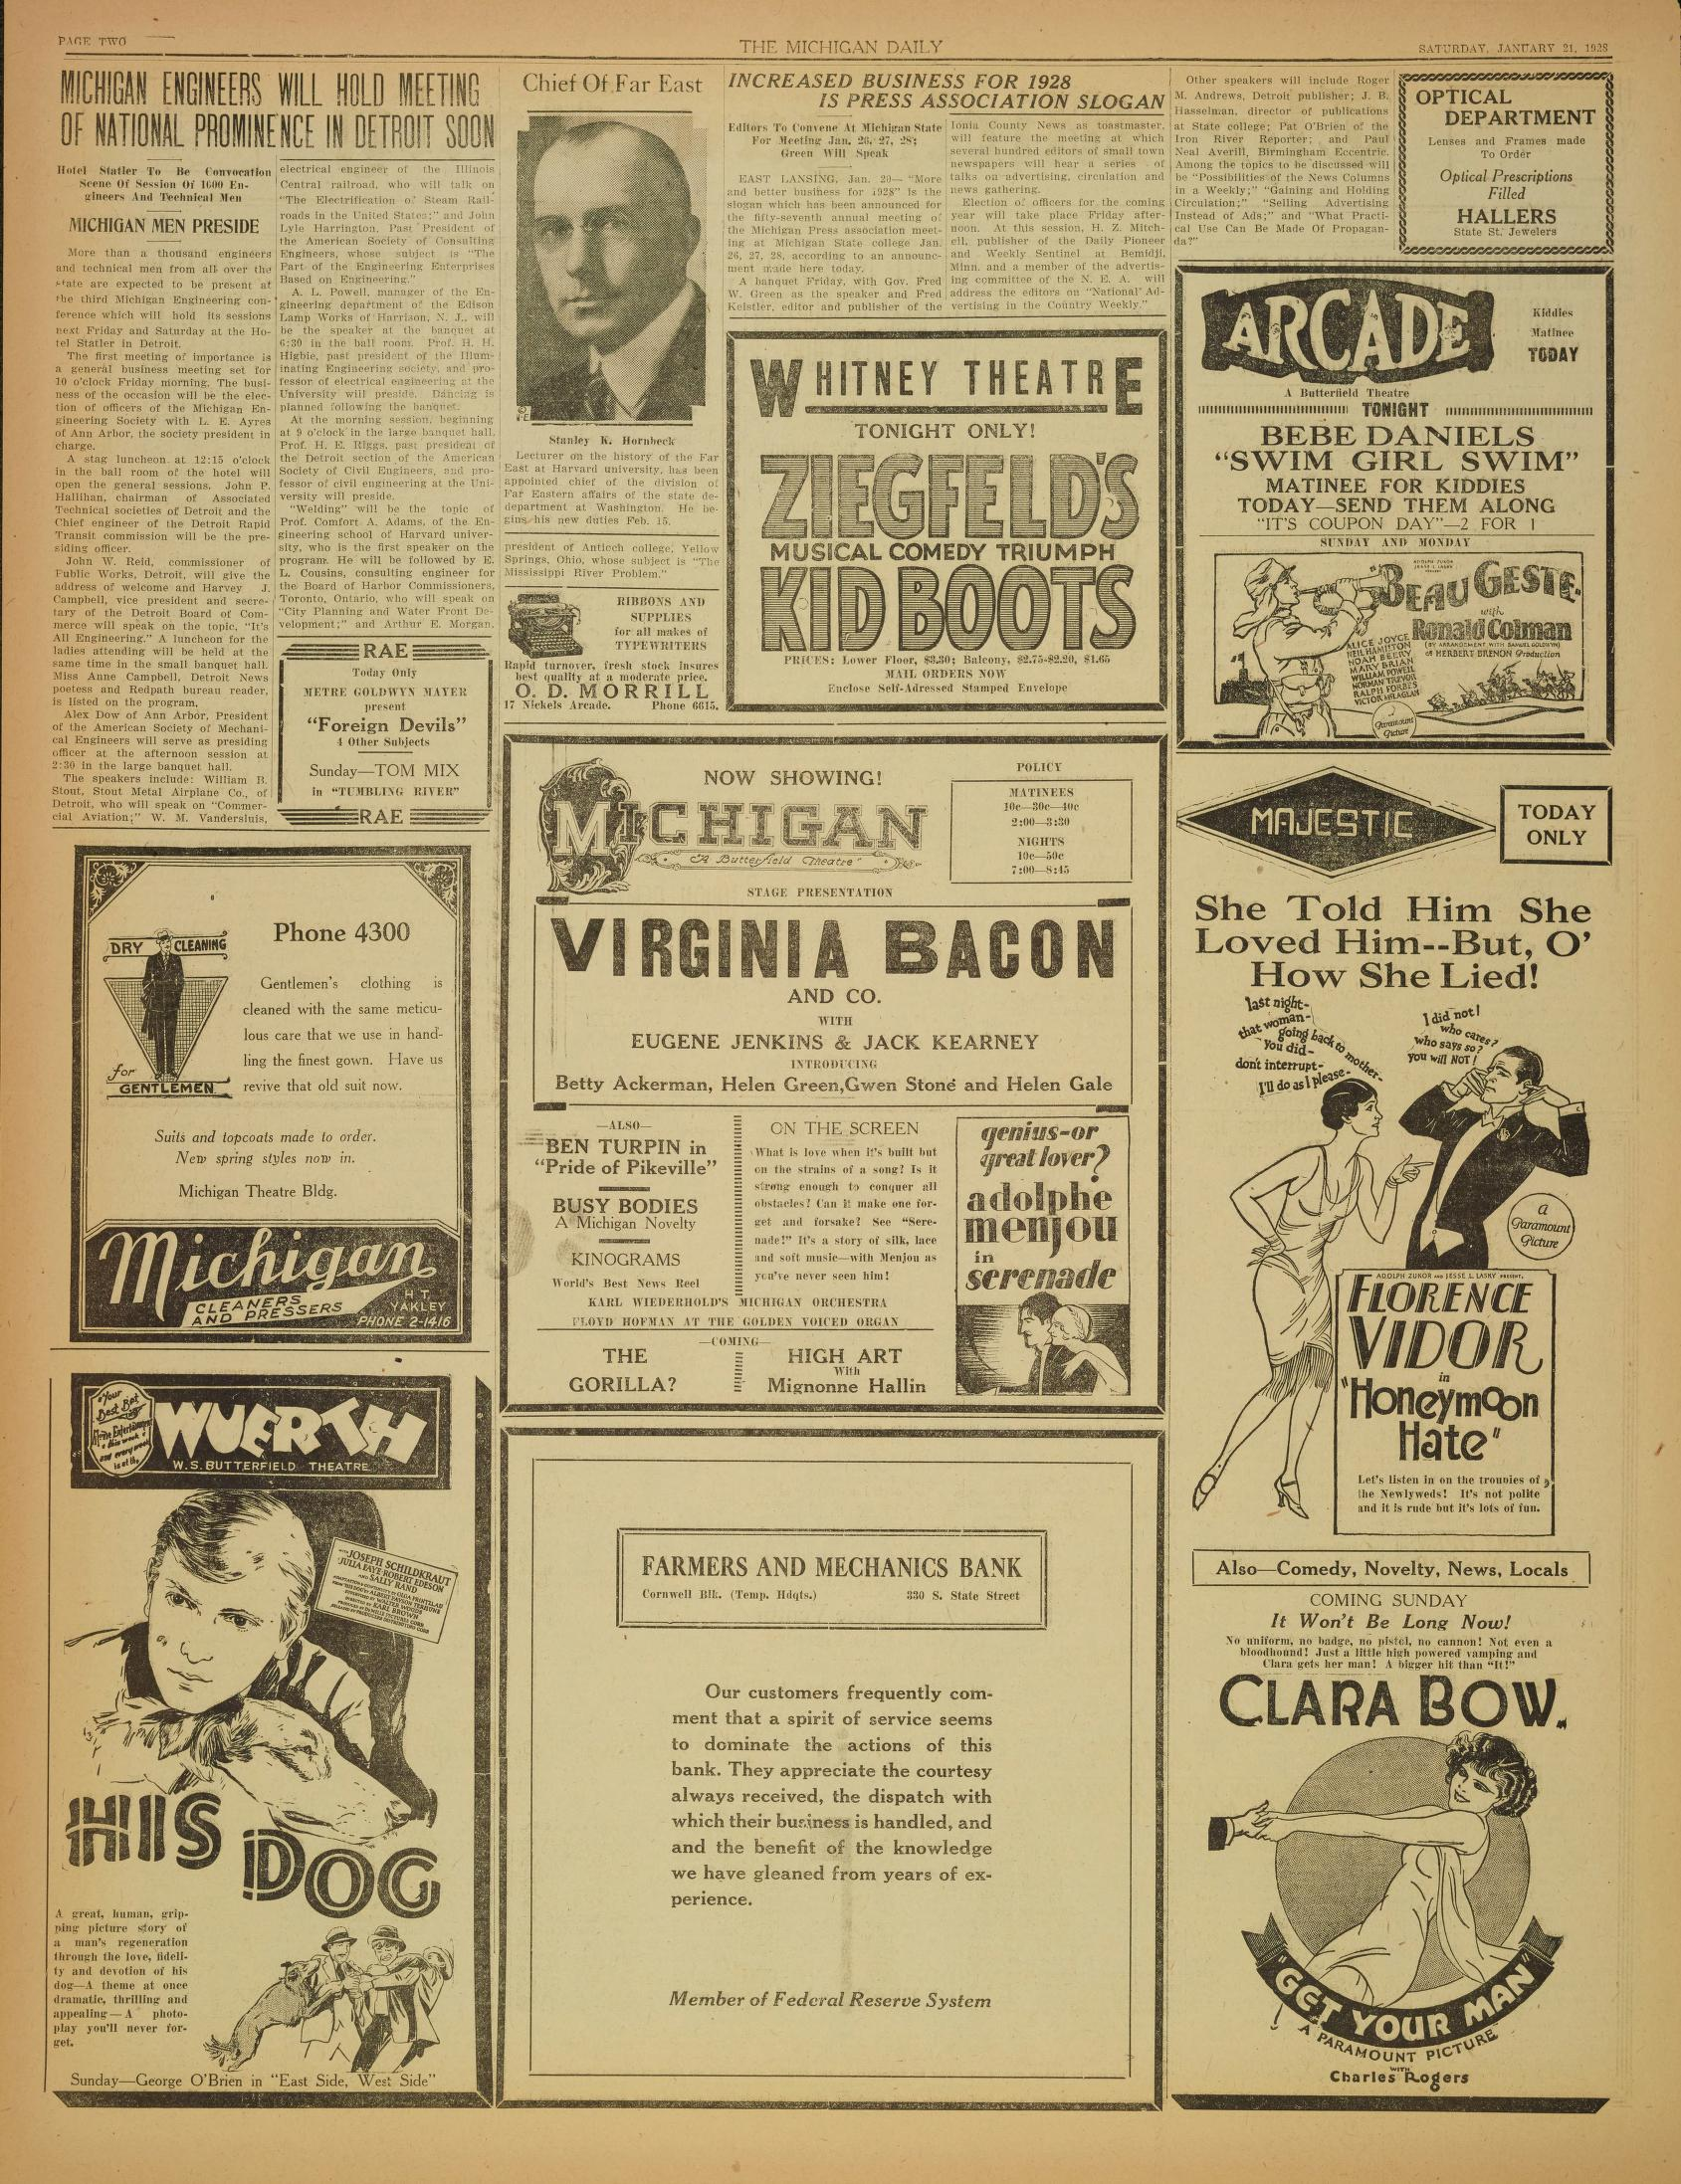 Michigan Daily Digital Archives - January 21, 1928 (vol  38